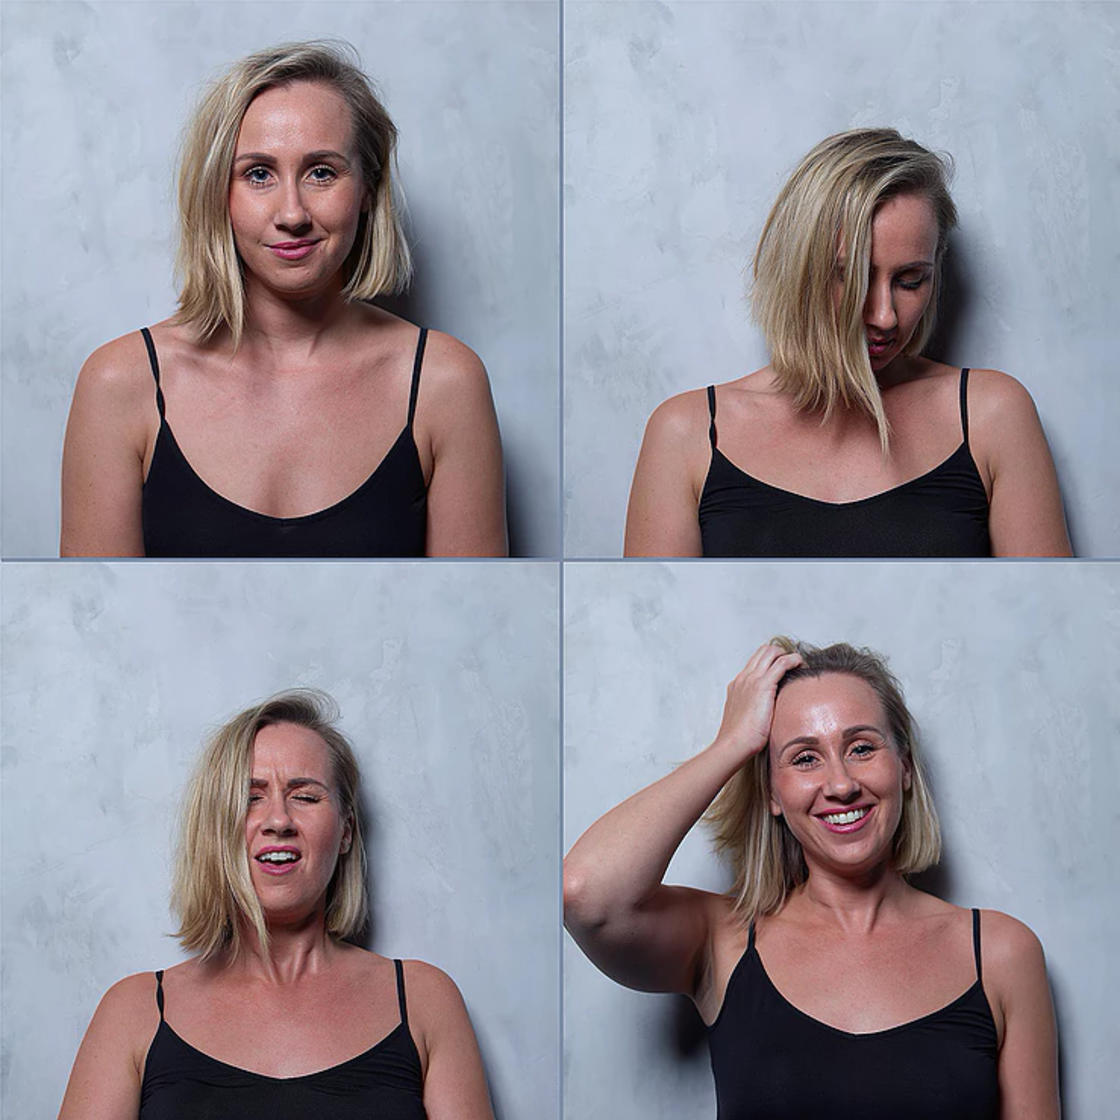 The faces of women before, during, and after orgasm